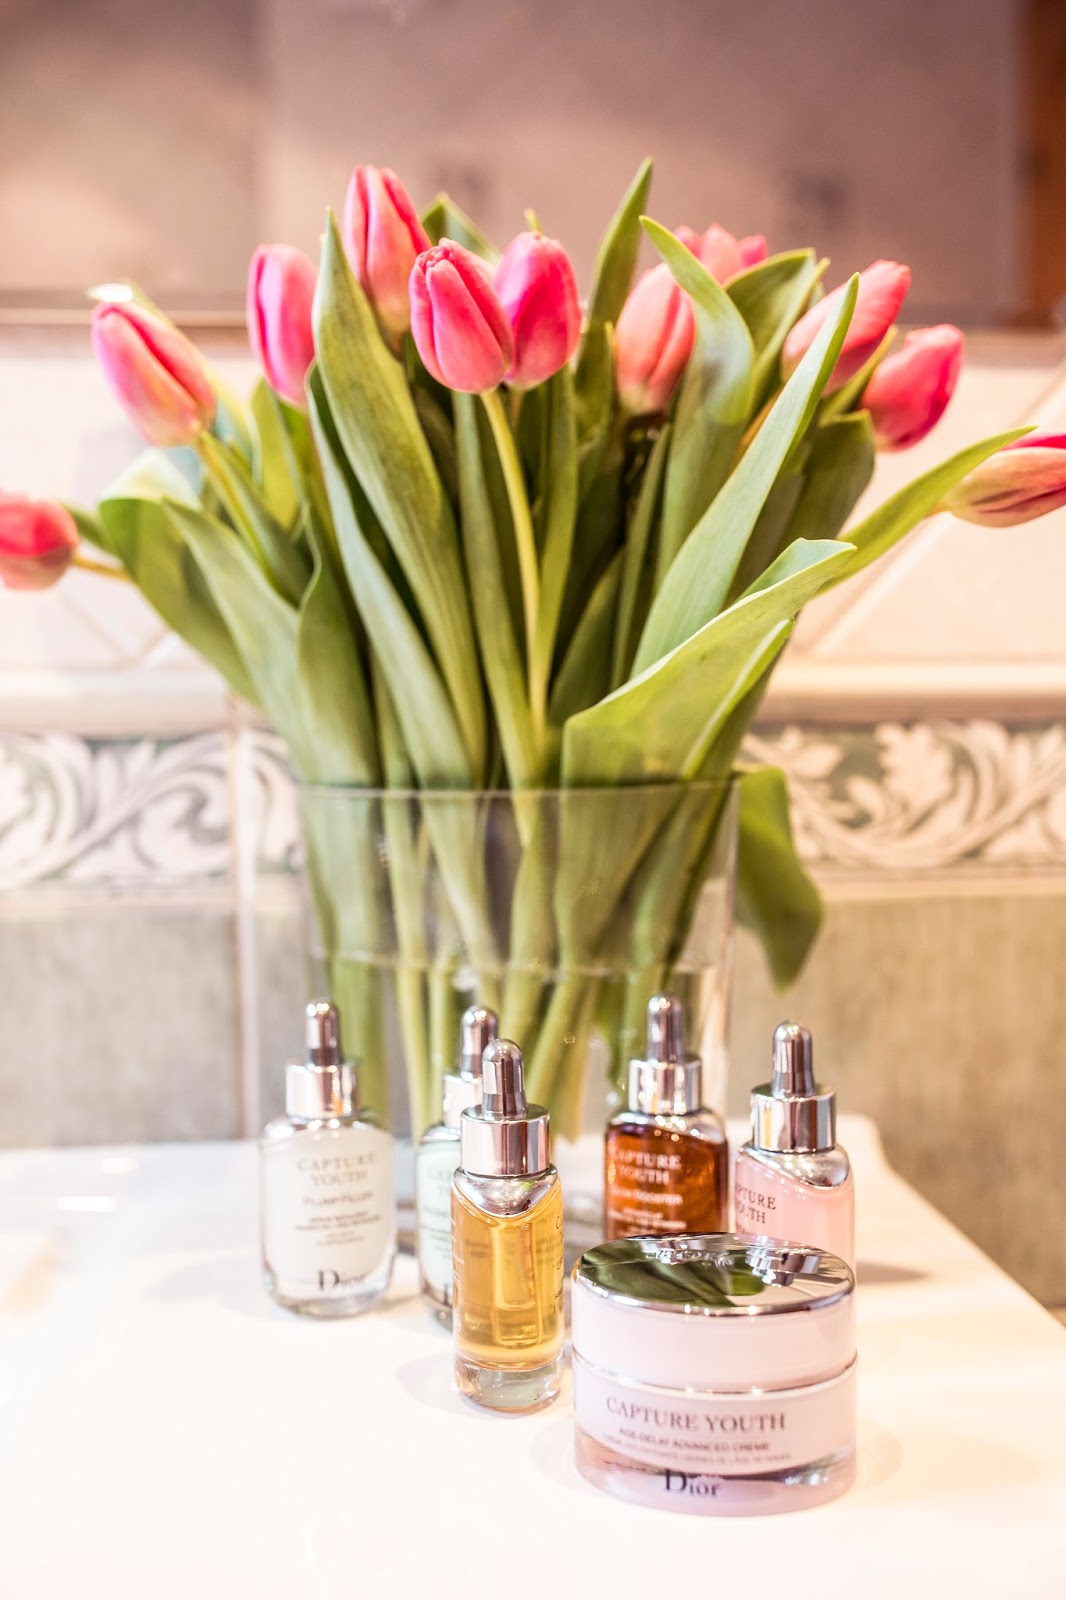 dior beauty skincare products bathroom desk flowers